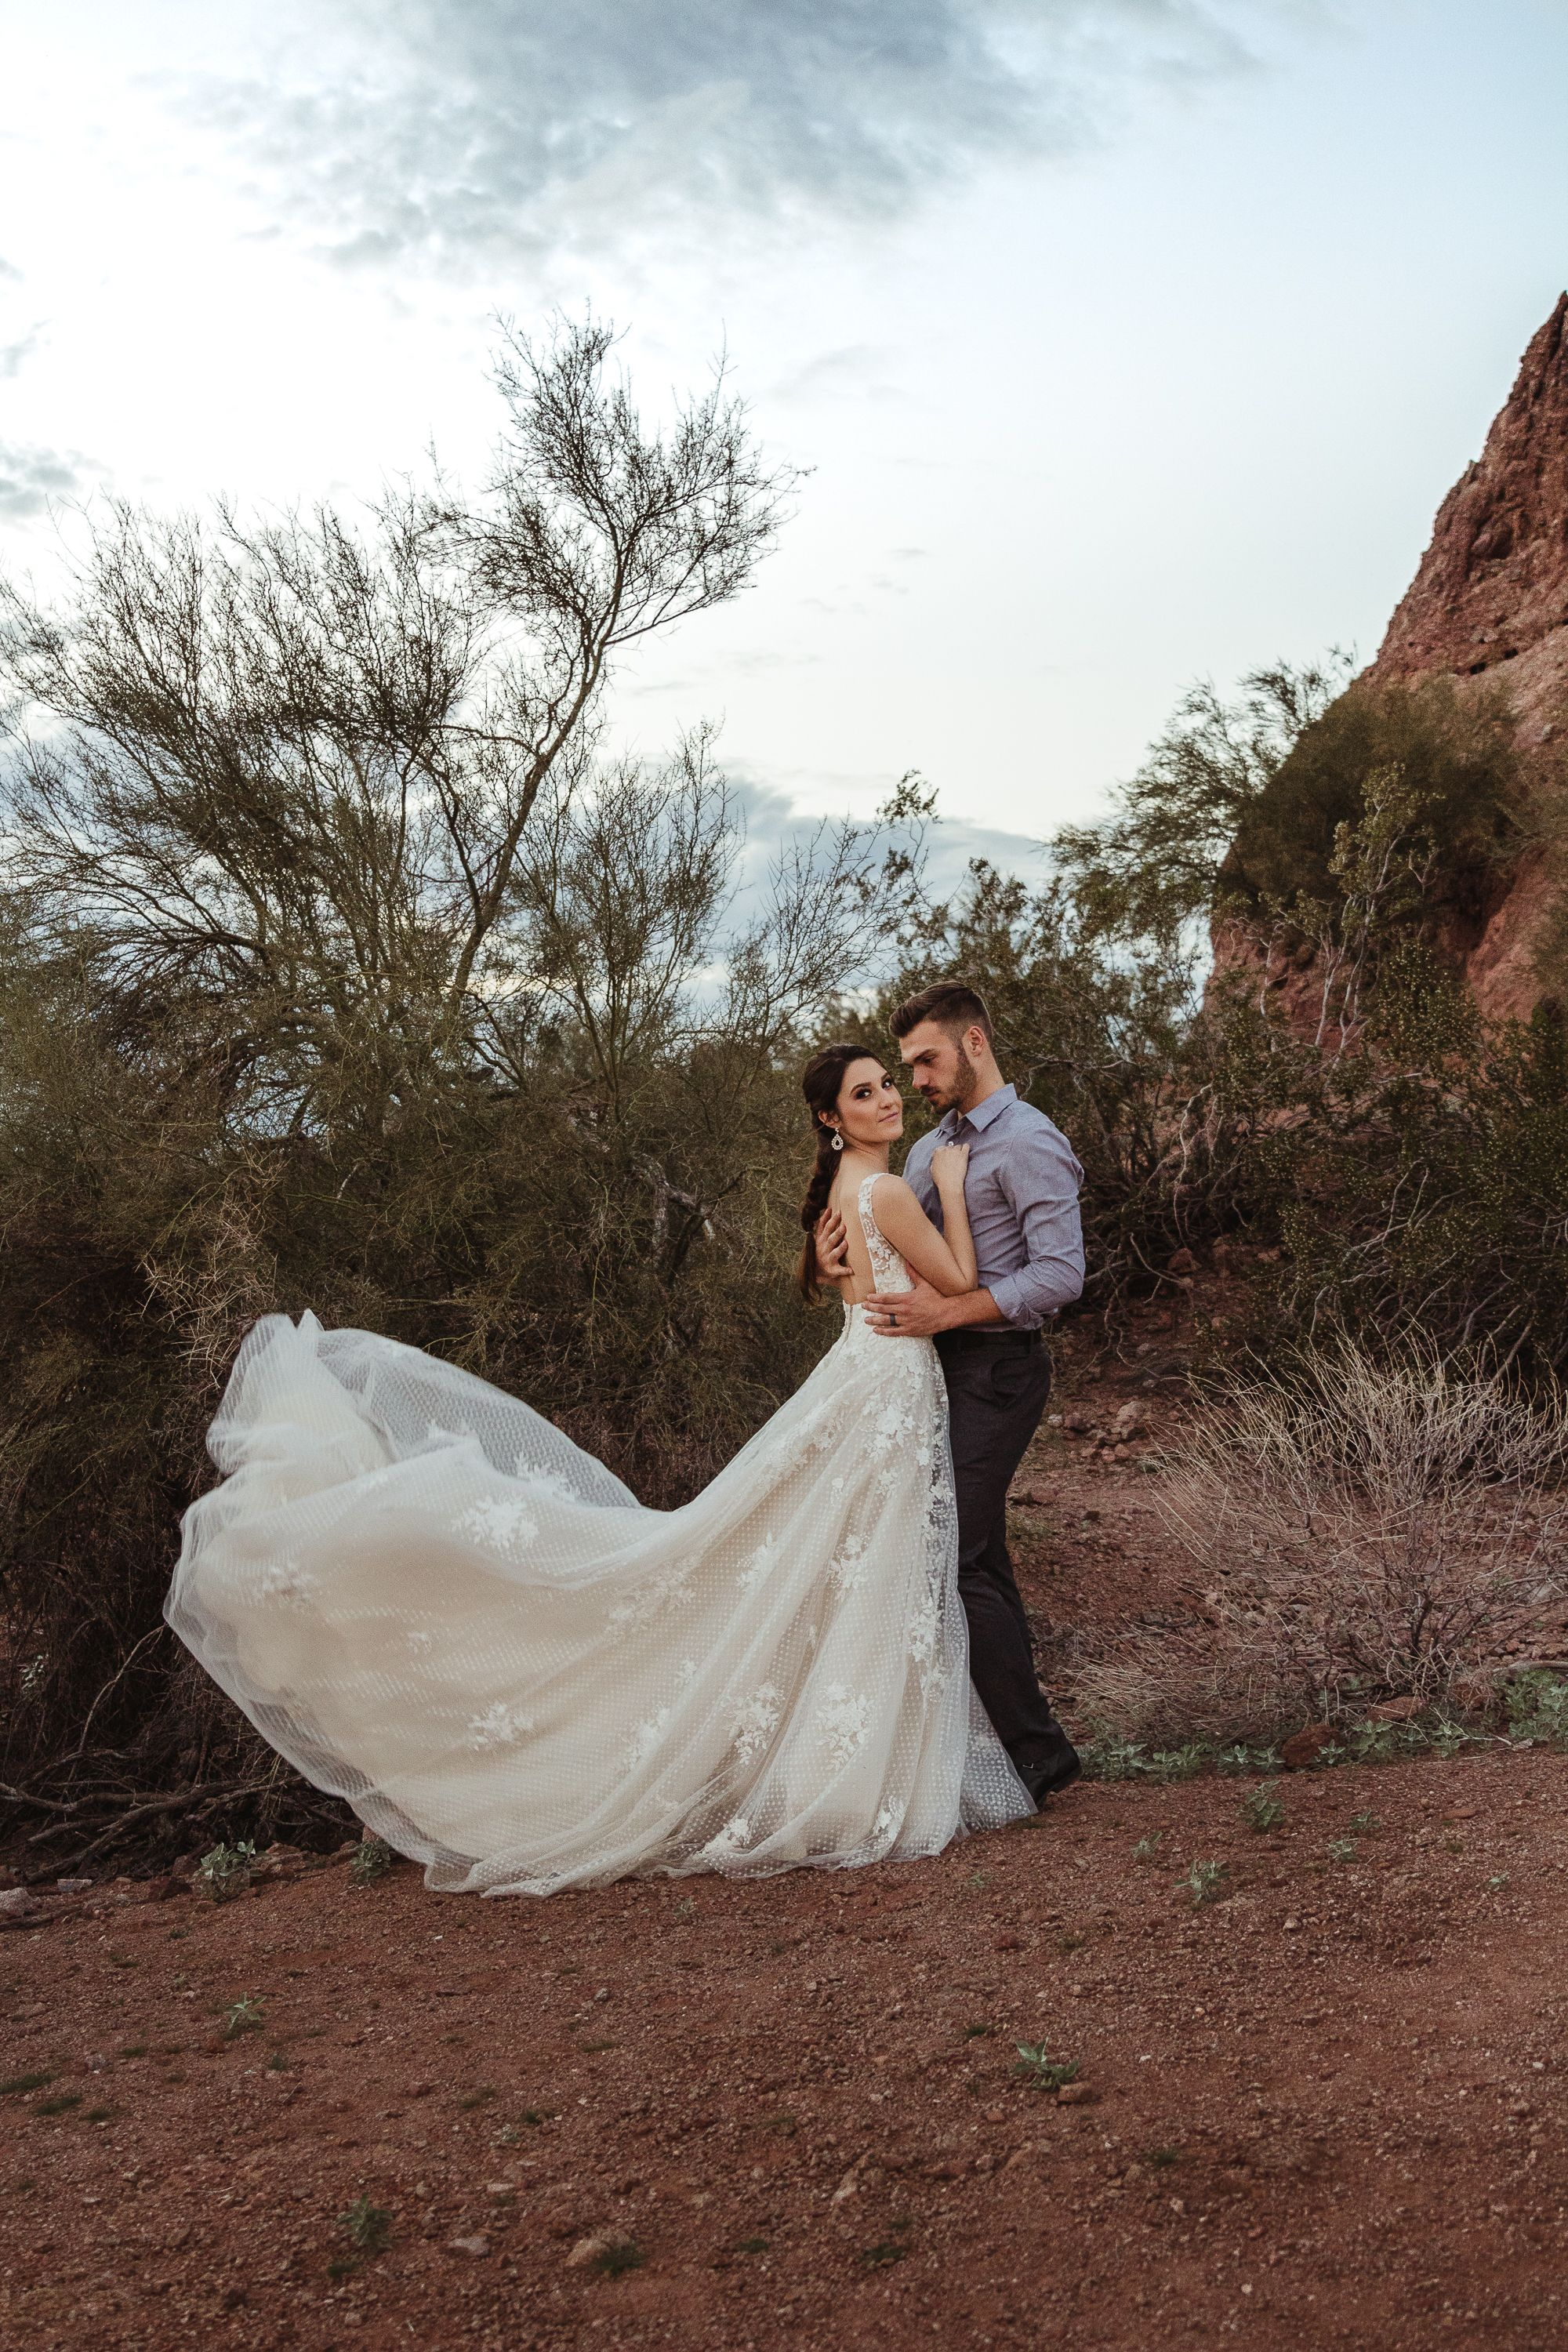 Top 3 Photoshoot Locations Near Phoenix Arizona